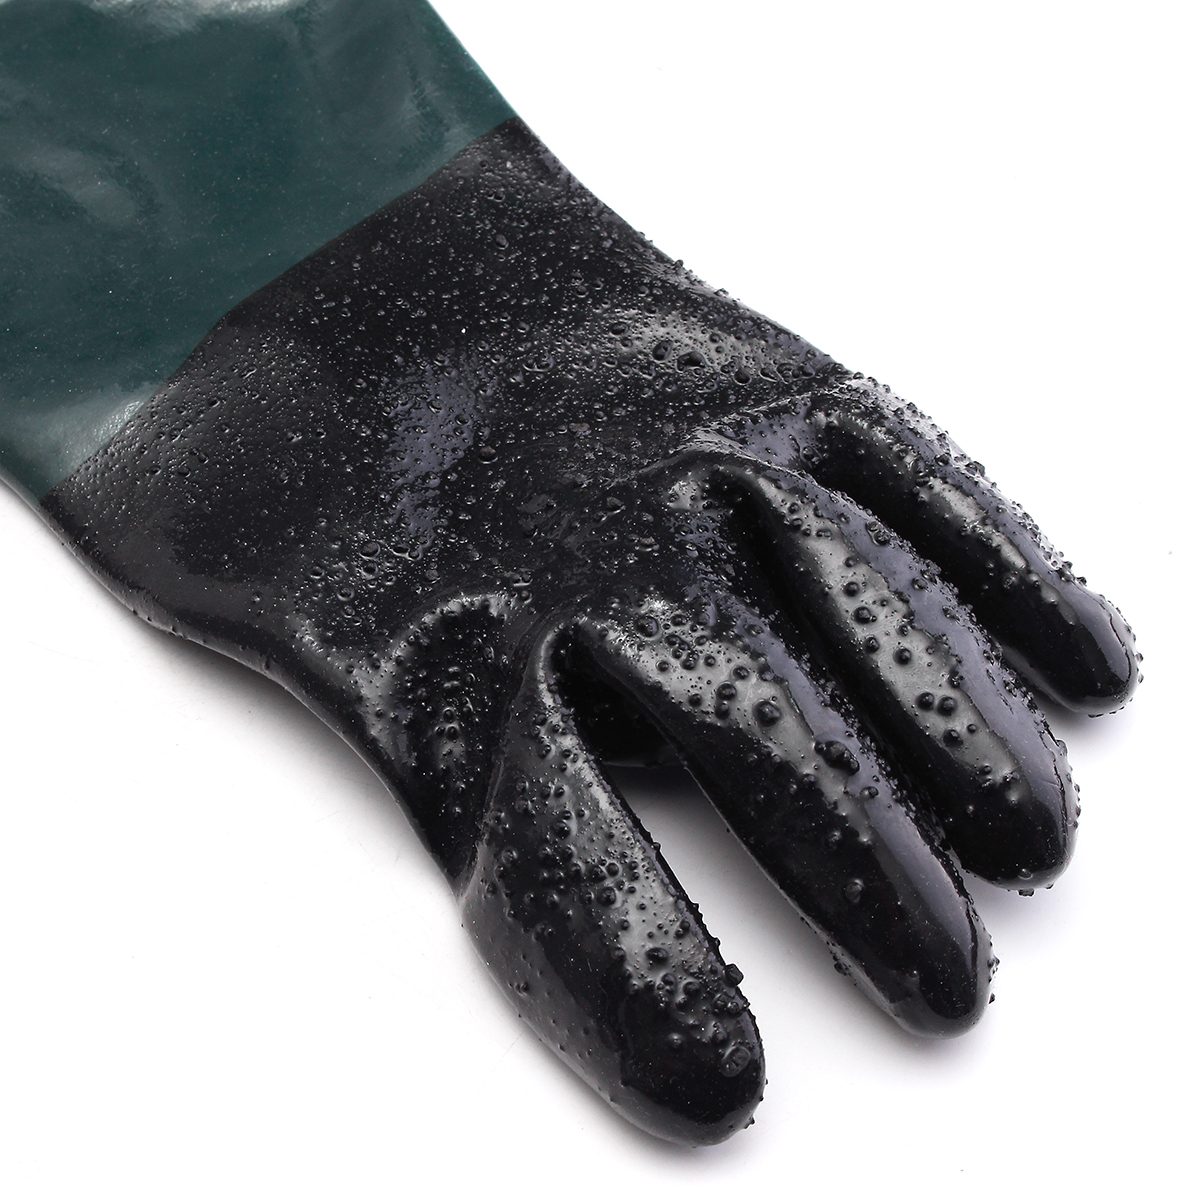 2Pcs 24Inch 60cm Rubber Gloves Replacement with Particles For Sandblast Cabinets